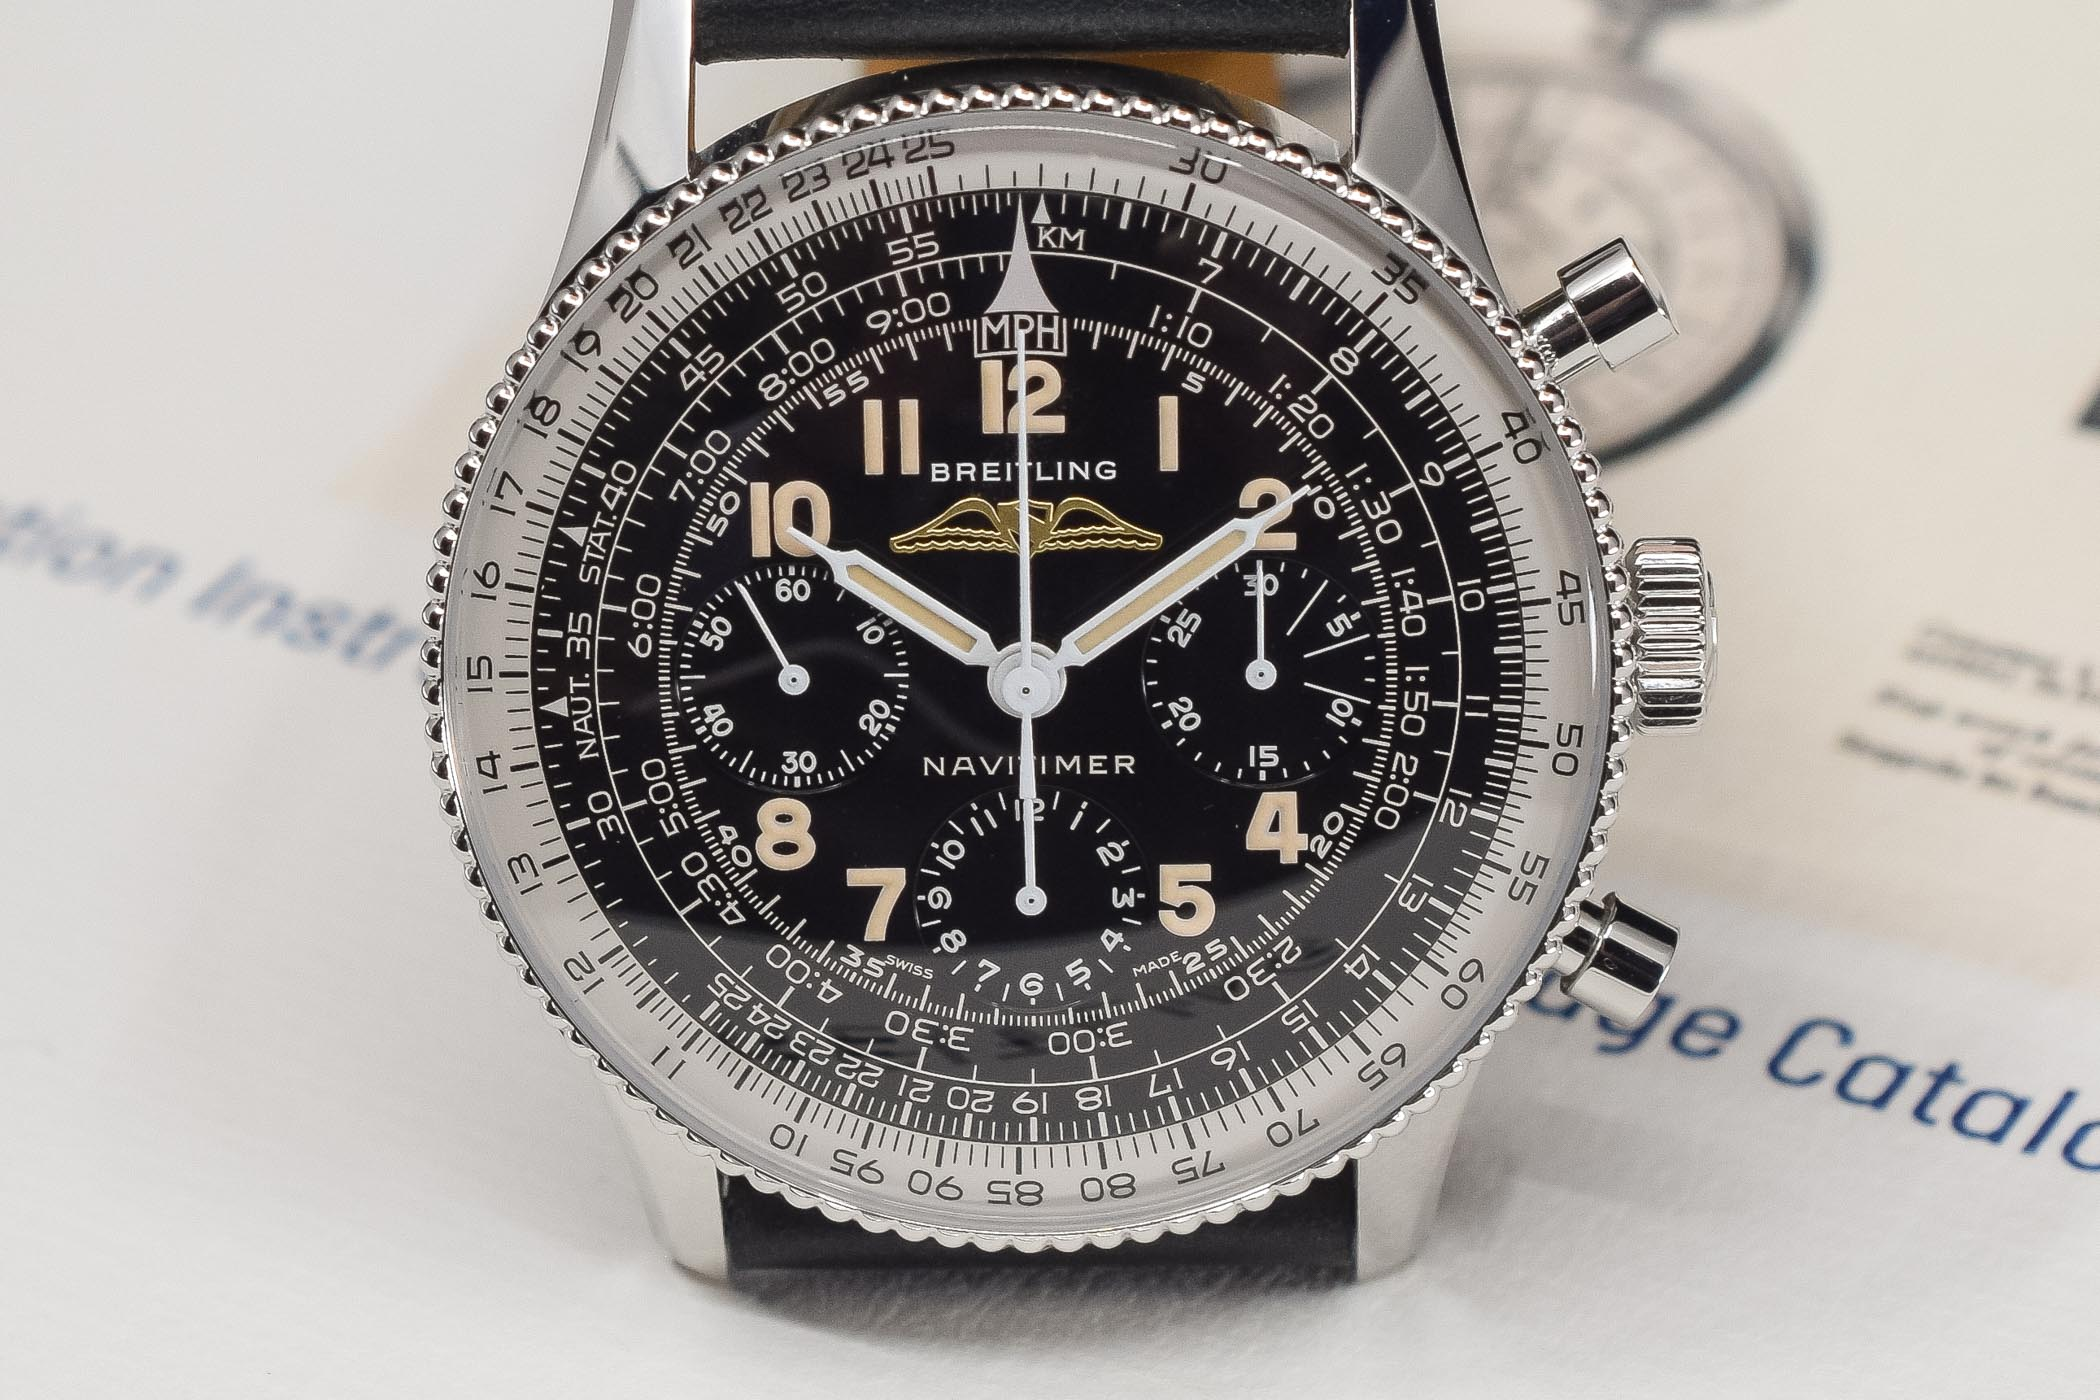 Breitling Navitimer Ref 806 1959 Re‑Edition - review - 5